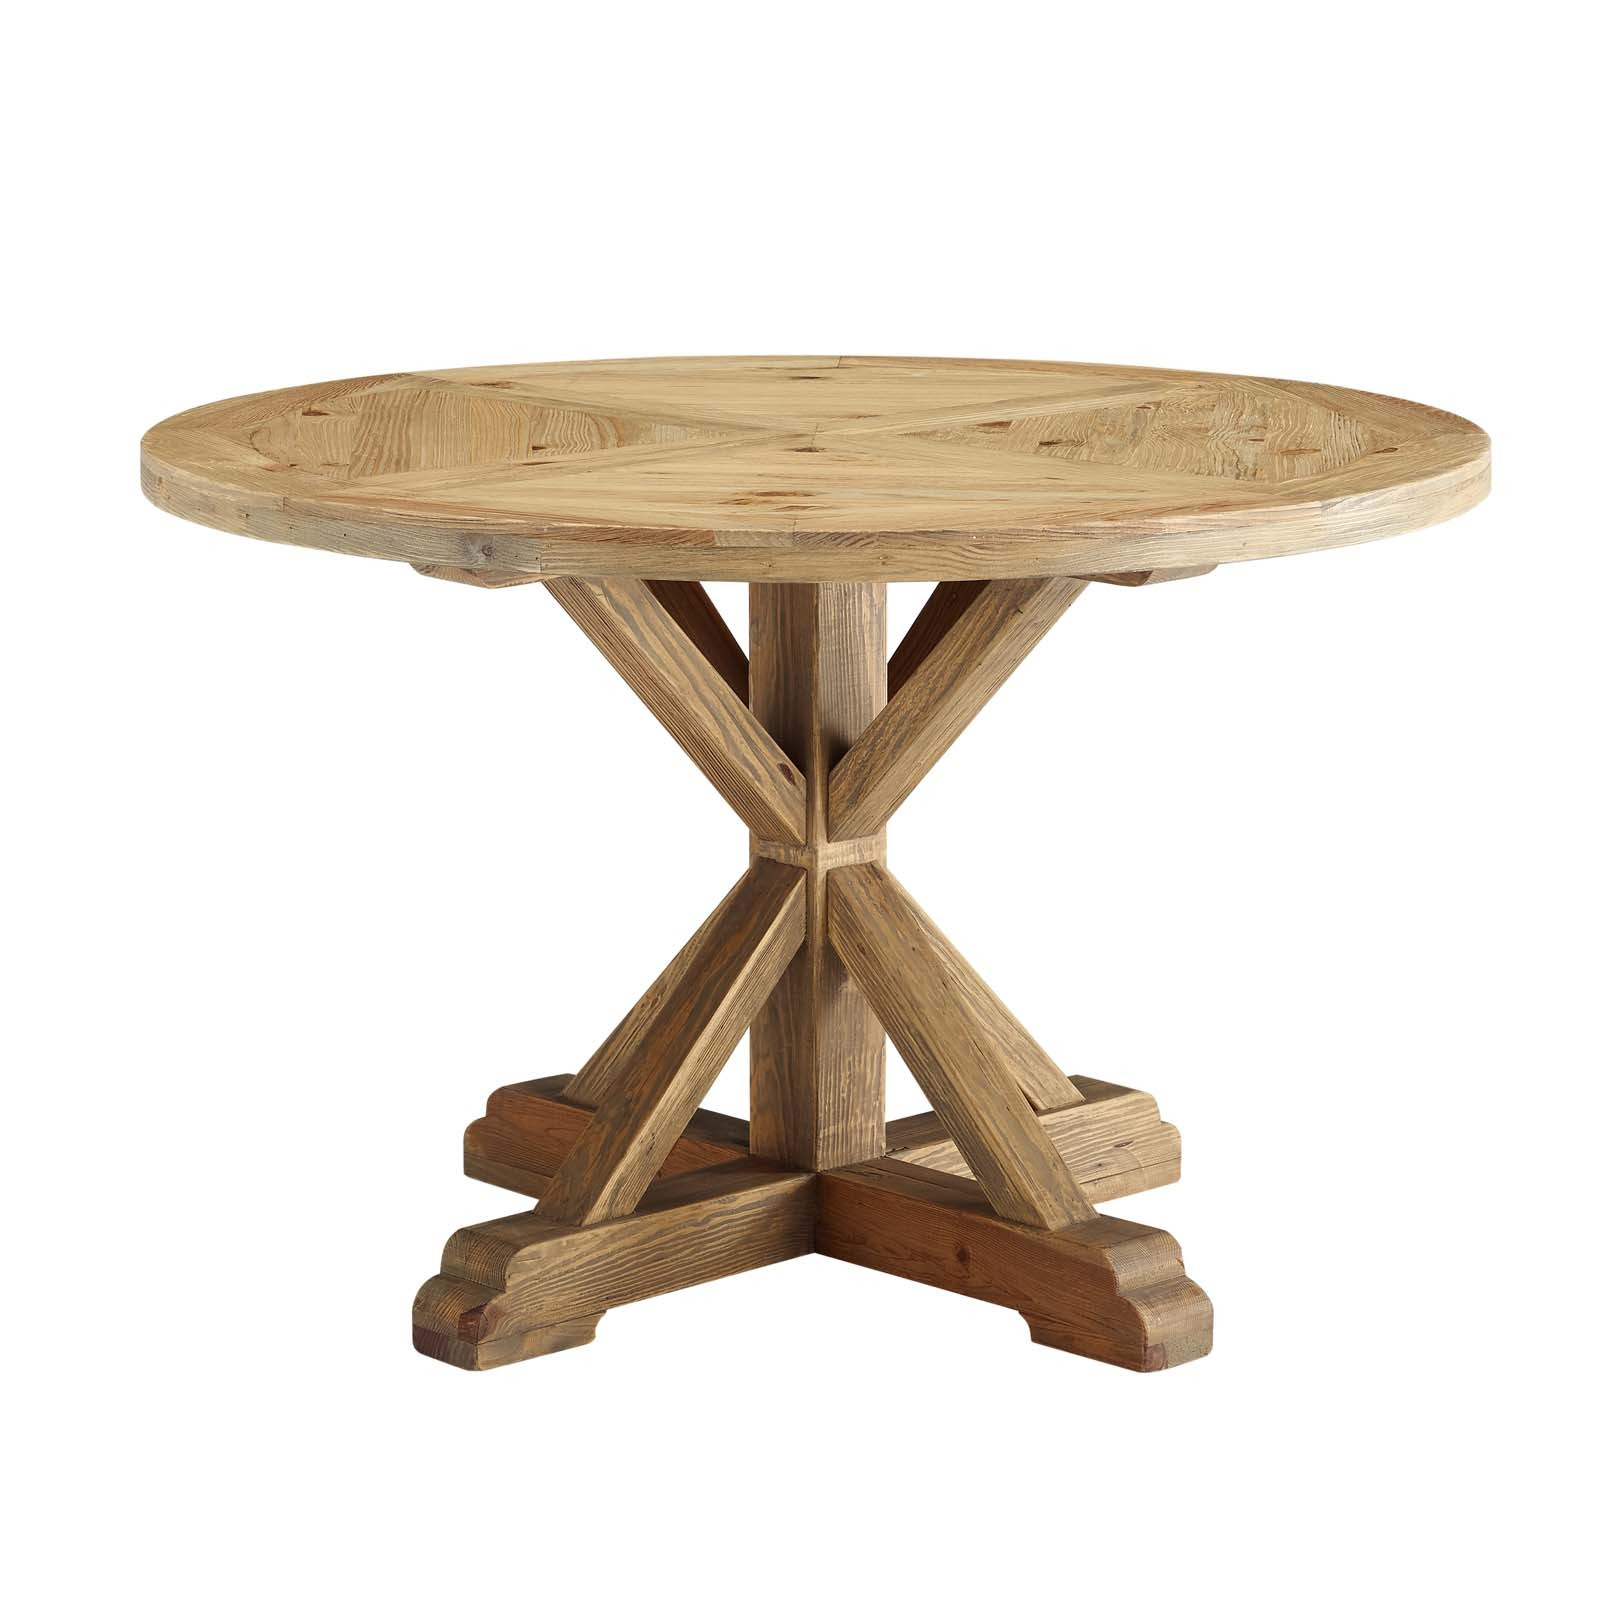 "Stitch 47"" Round Pine Wood Dining Table in Brown"